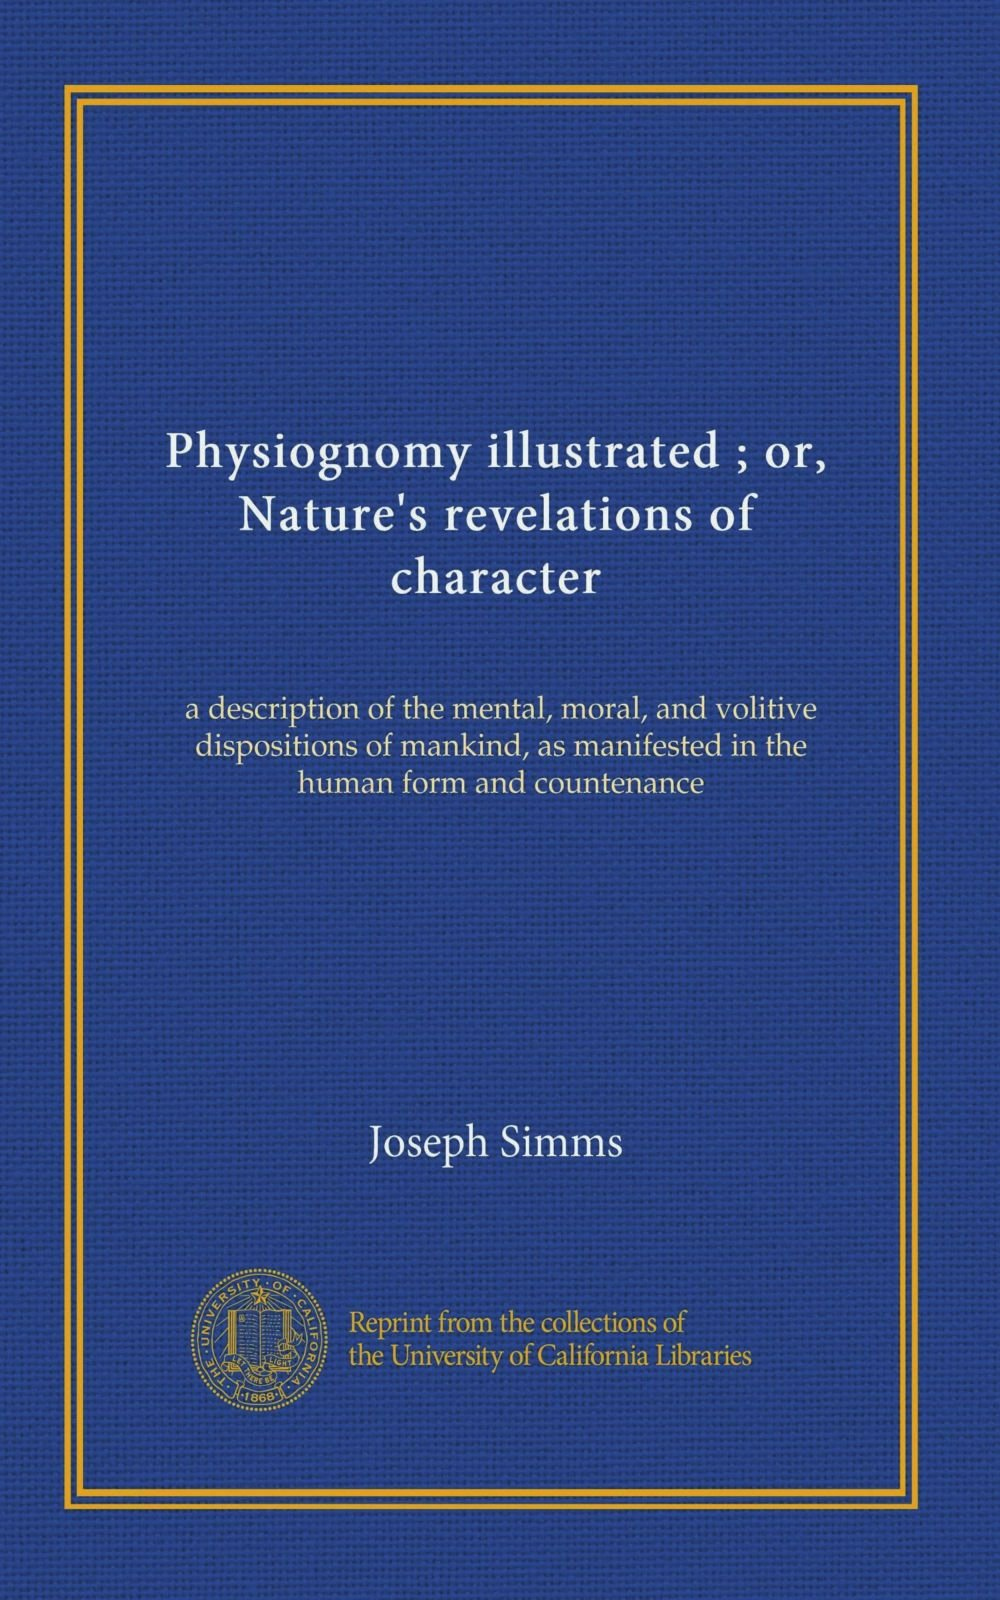 Read Online Physiognomy illustrated ; or, Nature's revelations of character: a description of the mental, moral, and volitive dispositions of mankind, as manifested in the human form and countenance ebook